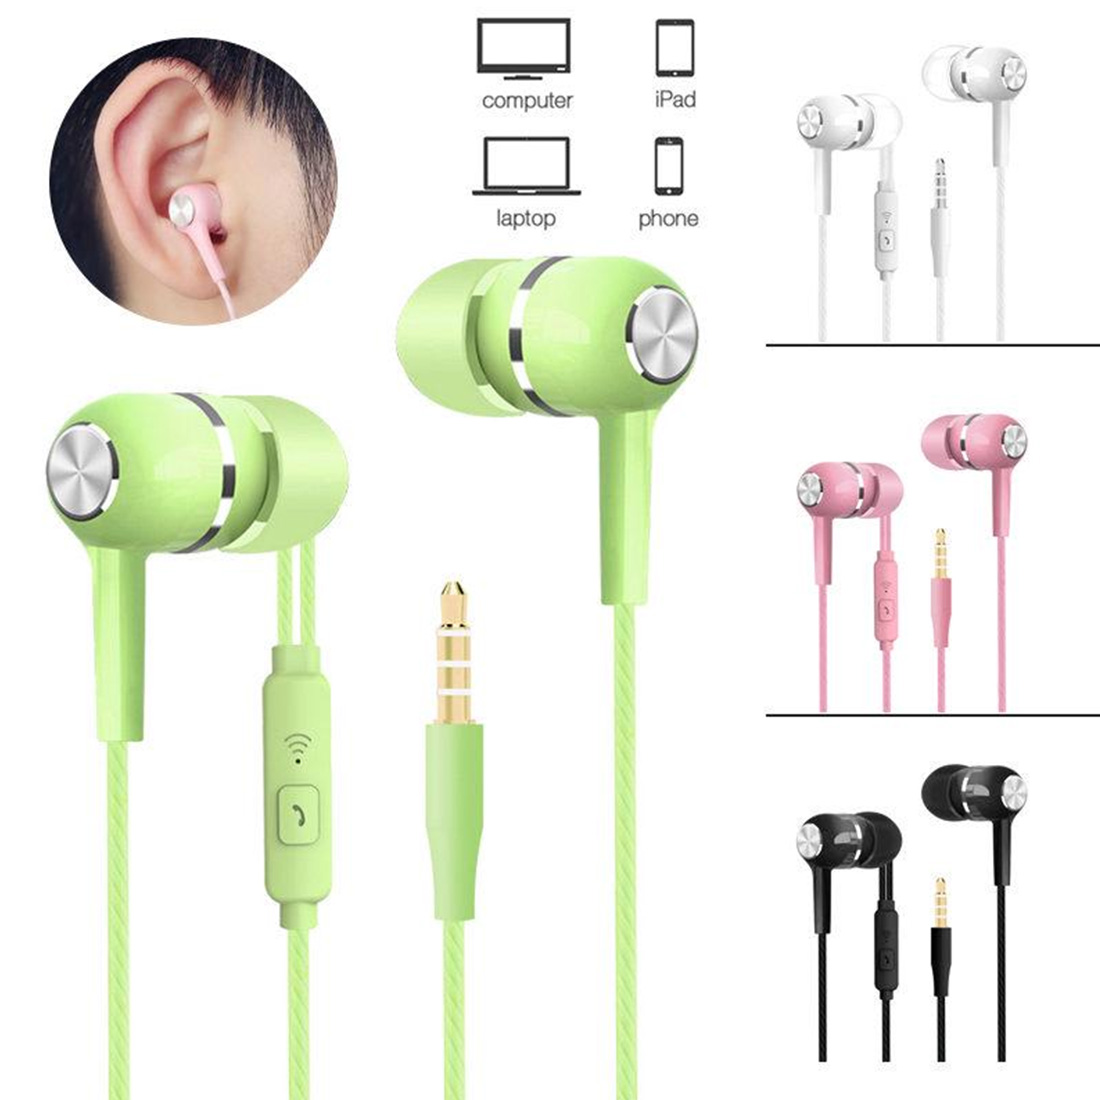 VPB S12 Sport Earphone In-ear Subwoofer Wired Headset With Wheat Line Control Universal Headset Mobile Phone Ear Plug